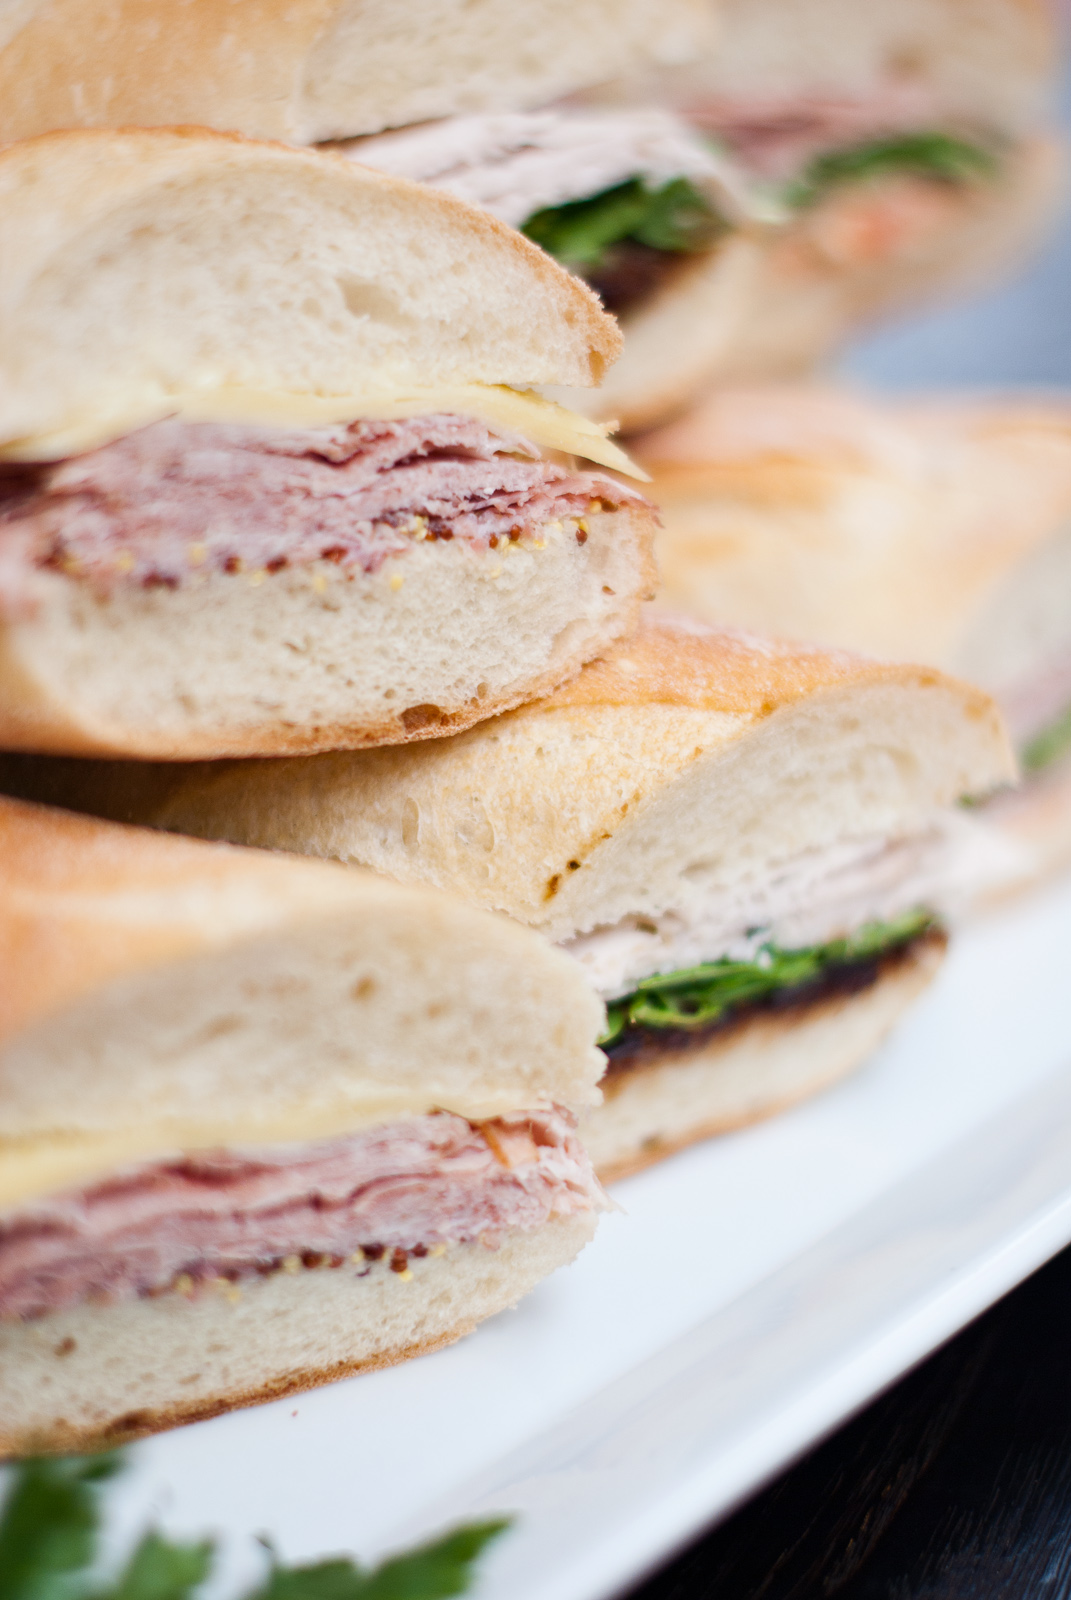 close up of our catered European style baguette sandwiches cut in half